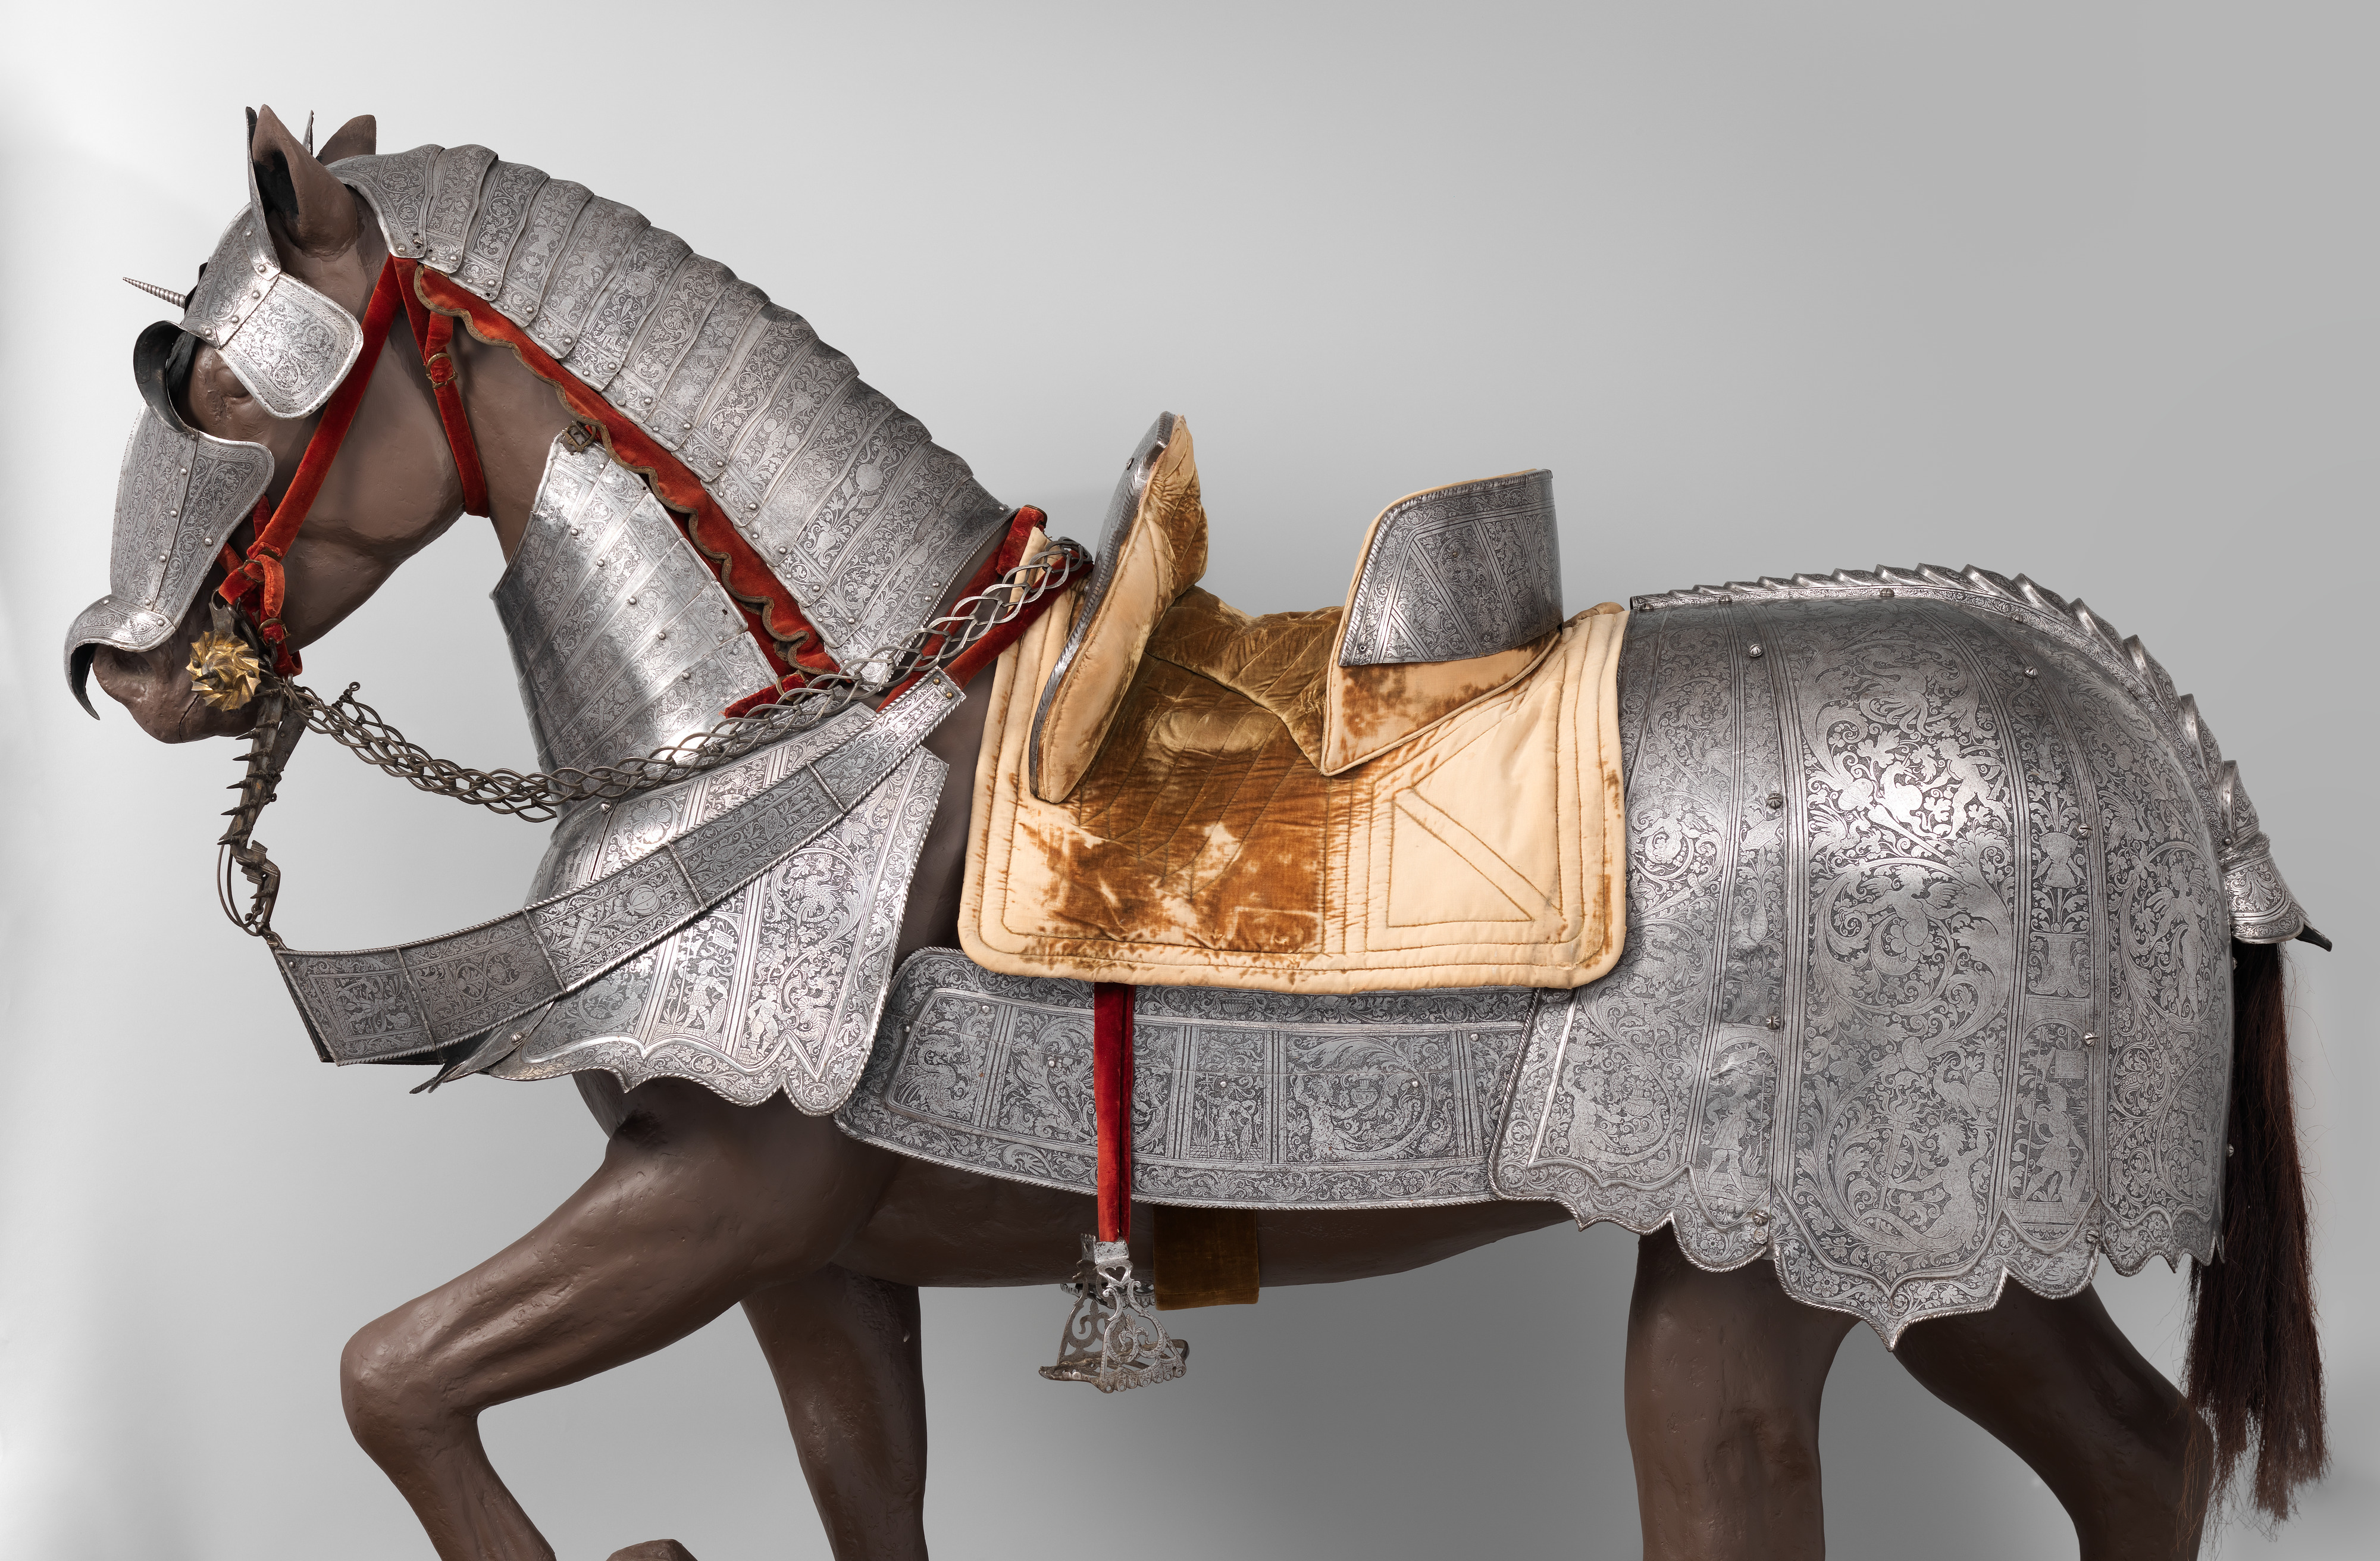 Armor for Man and Horse | Italian, Milan and Brescia | The Met